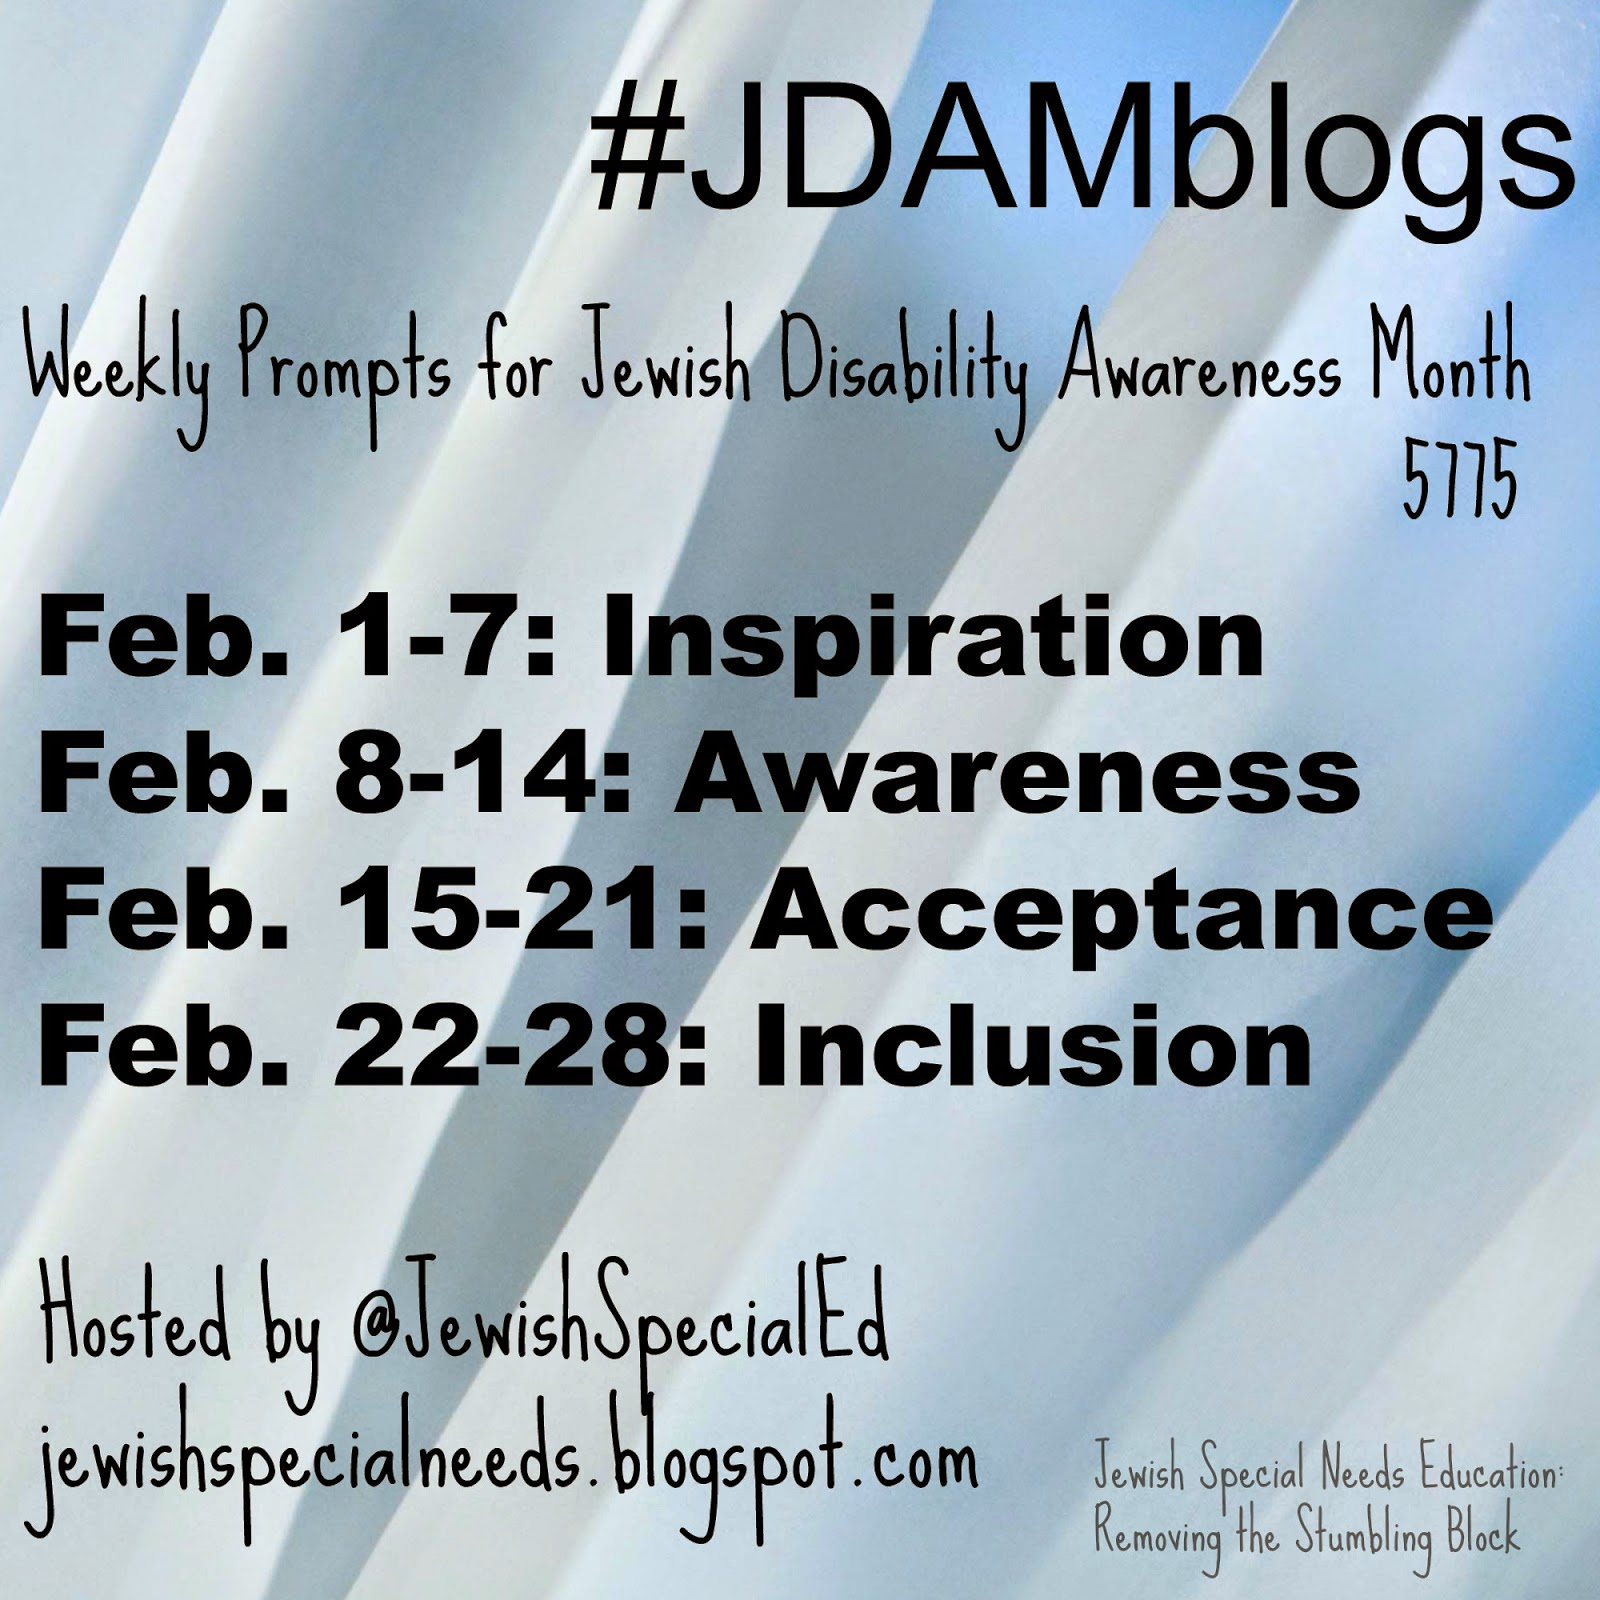 JDAMblogs: weekly prompts for Jewish Disability Awareness Month